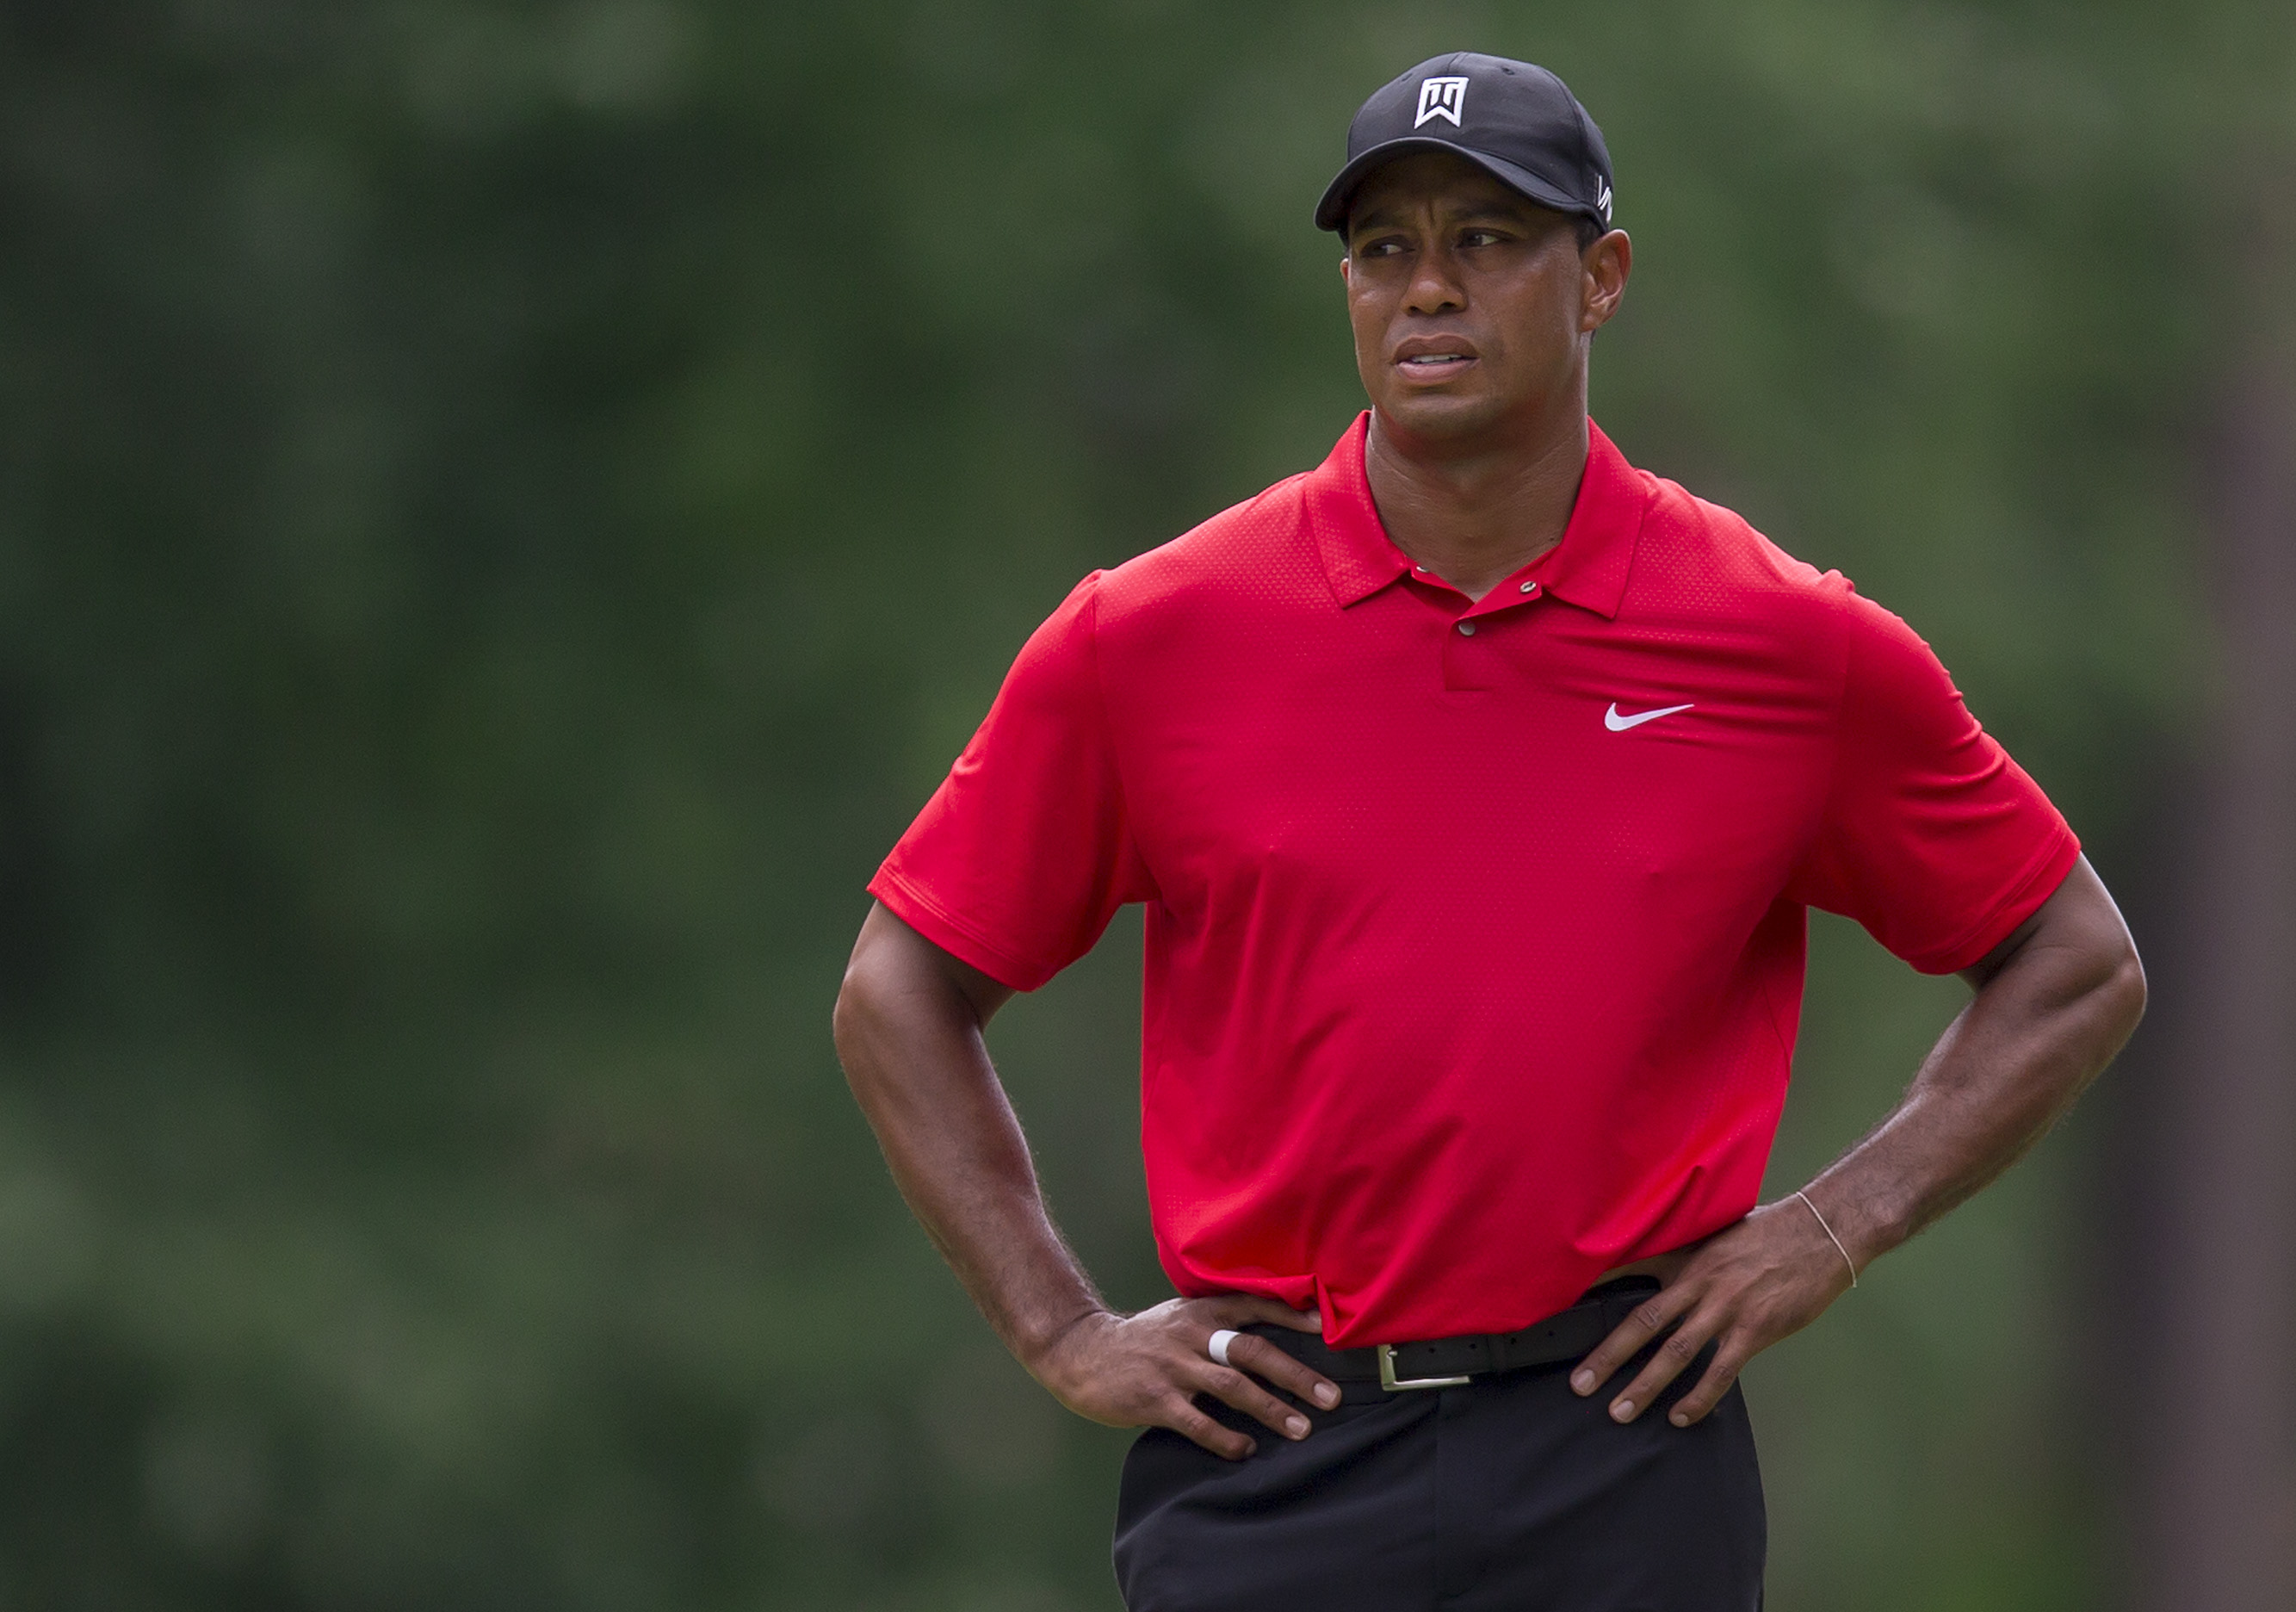 Tiger Woods pauses on the fifth hole during the final round of the Wyndham Championship at Sedgefield Country Club in August.